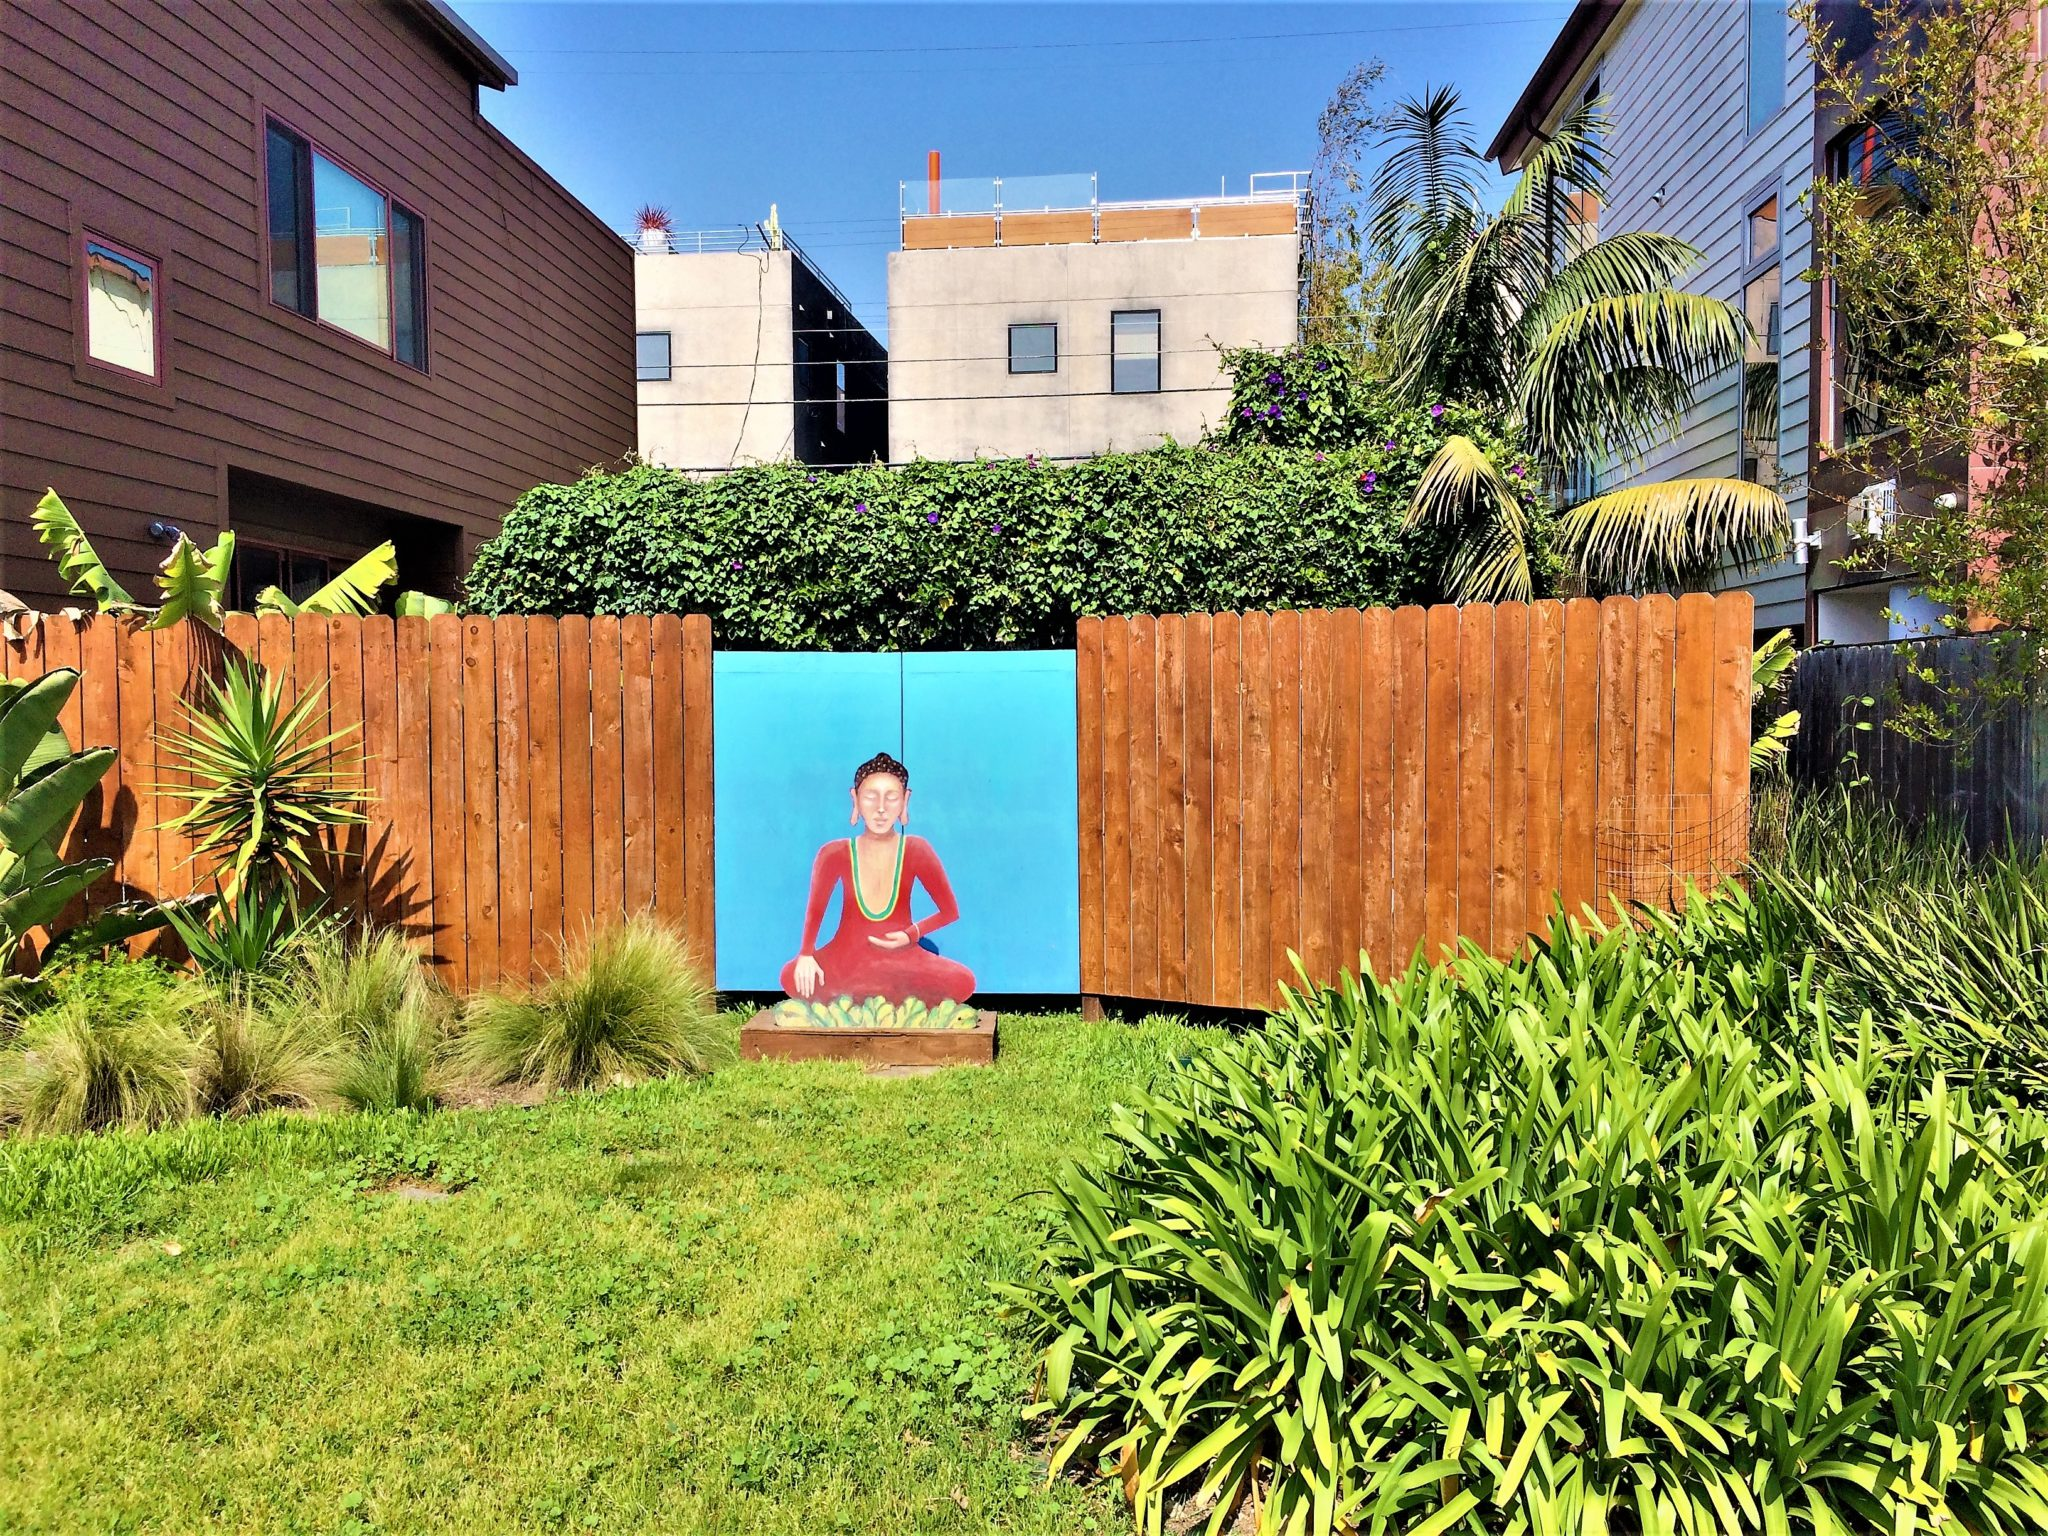 Buddha at venice canals, los angeles